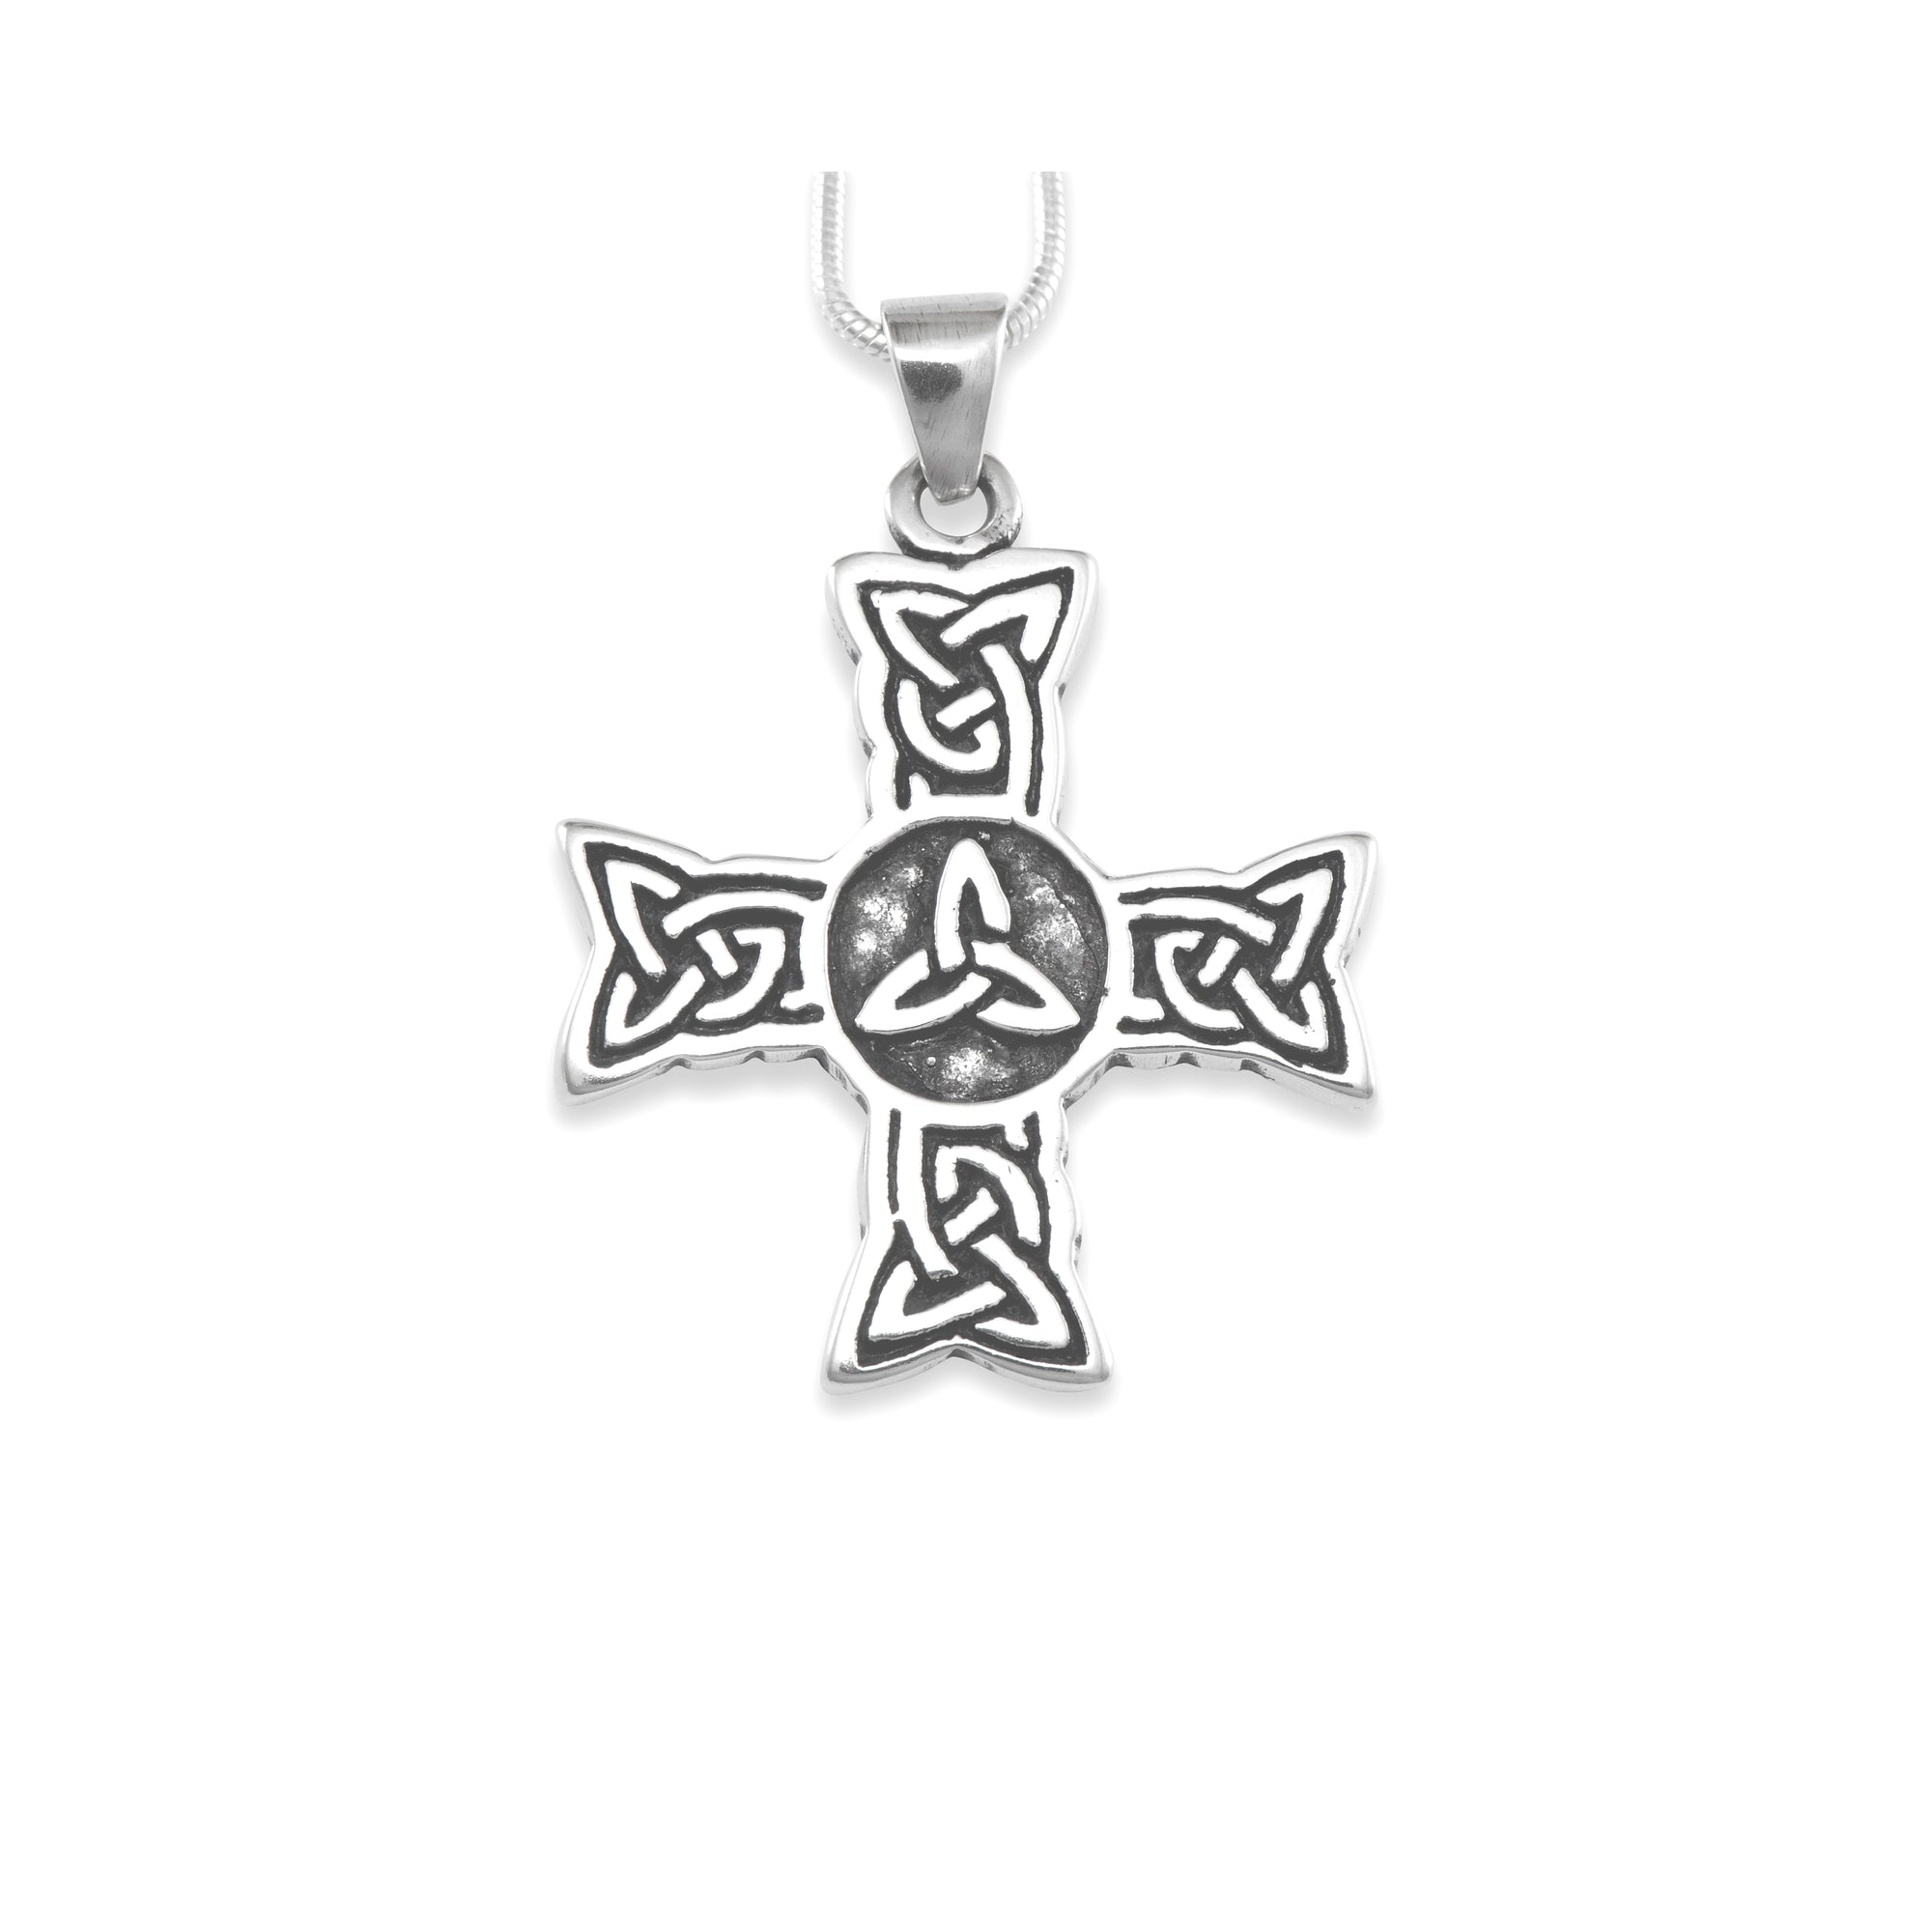 celtic necklace cross viking youe pendant itm religioun religiou pewter ancient ebay knot irish shone